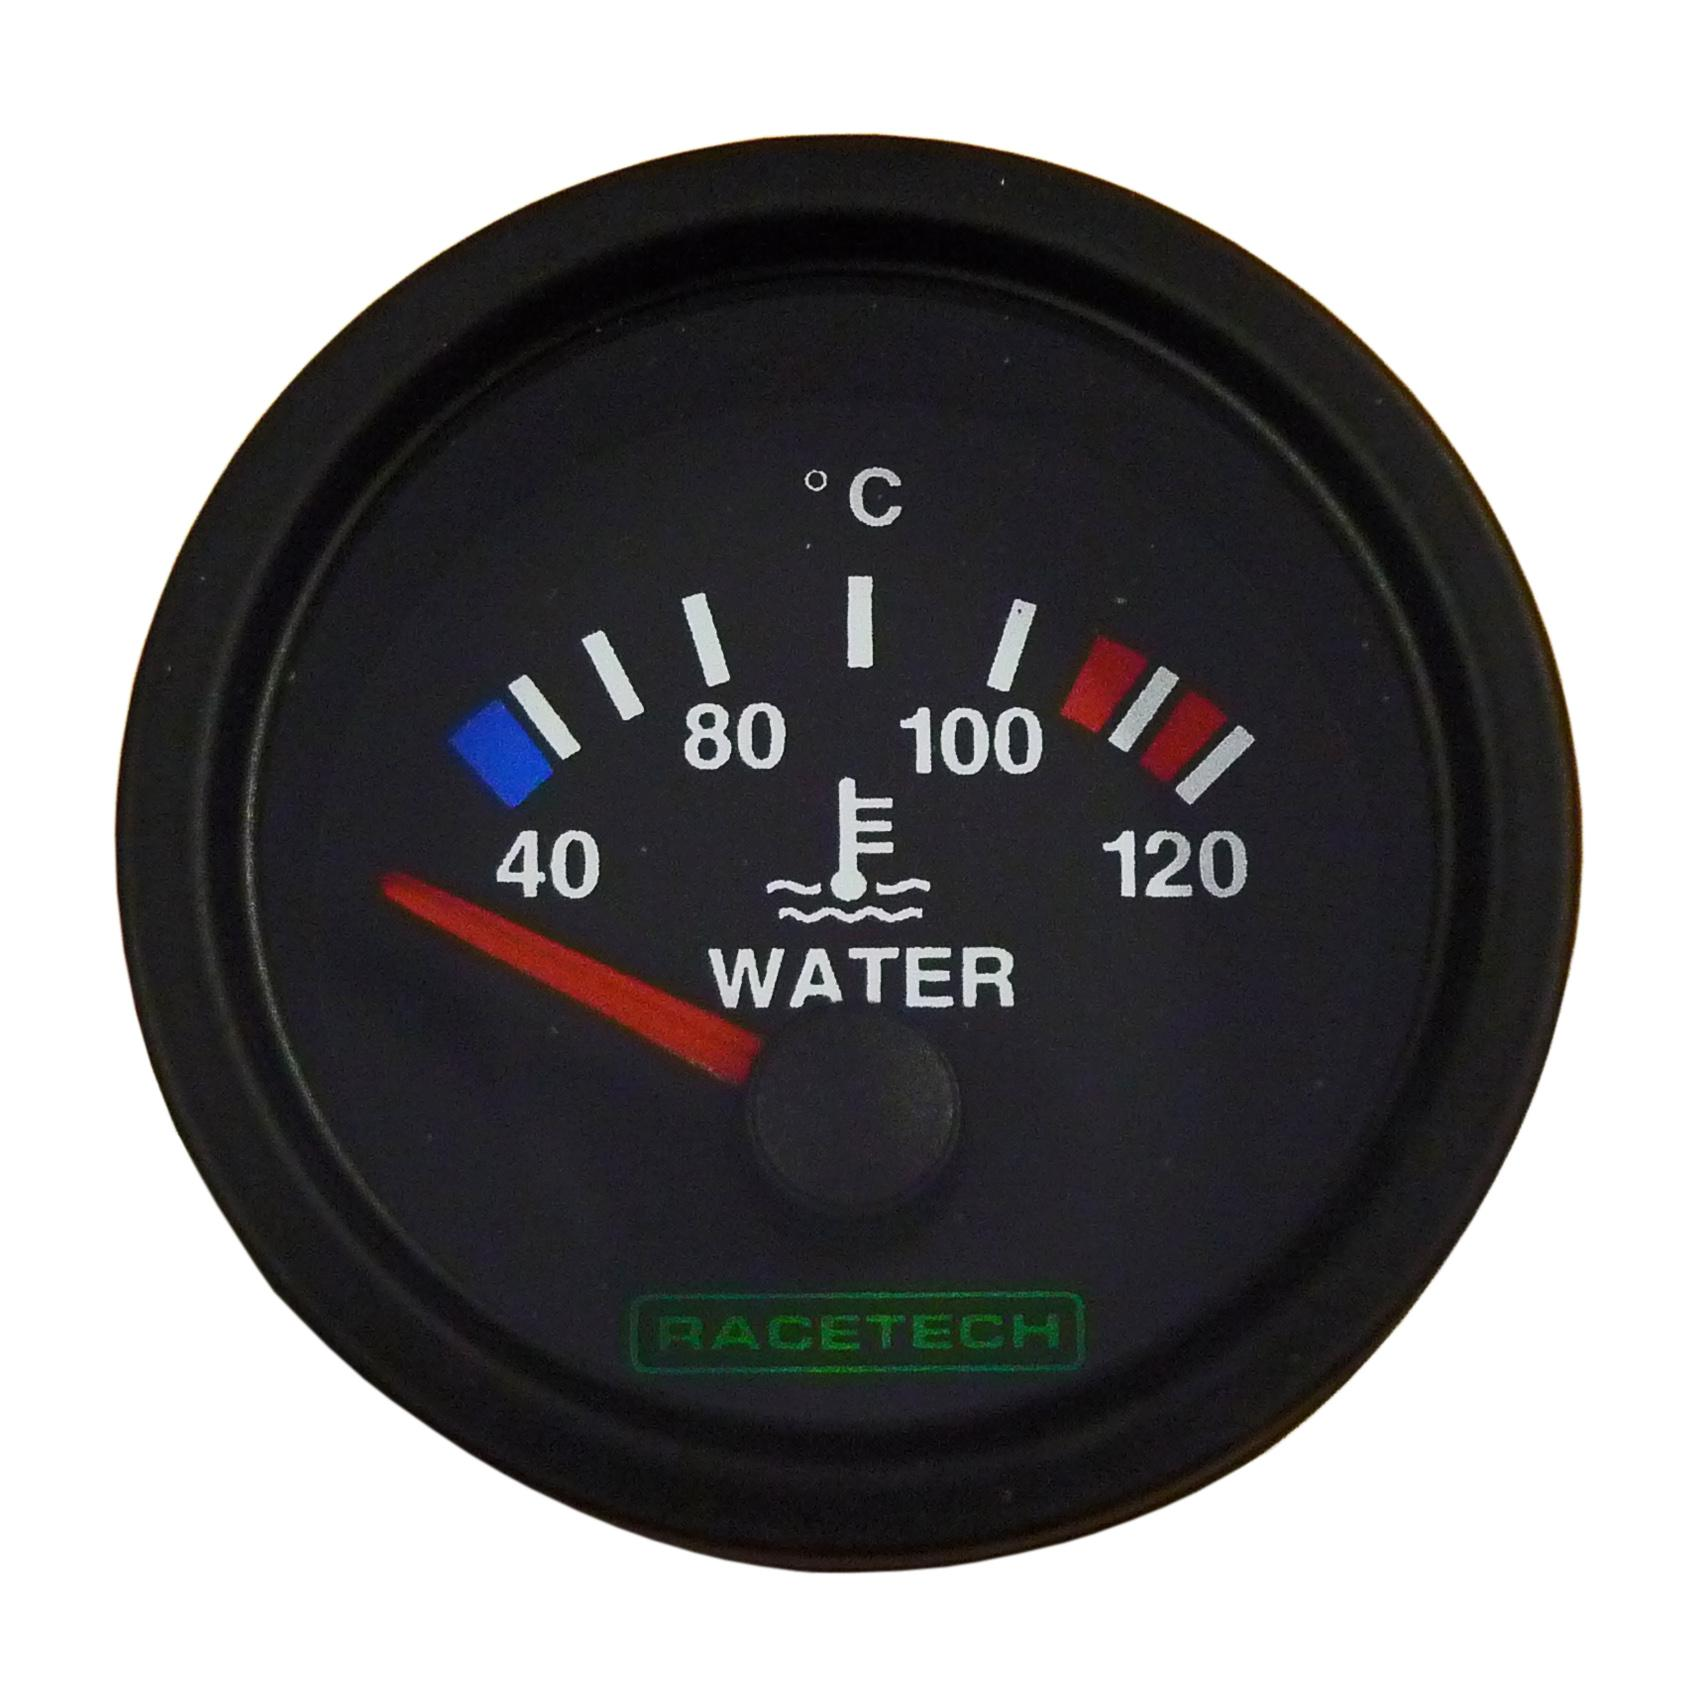 Electrical Temperature Gauge - The Portal And Forum Of Wiring Diagram on automotive body, automotive brakes diagrams, automotive chassis diagrams, car repair diagrams, automotive starter, automotive braking system, pinout diagrams, electrical diagrams, automotive software, automotive vacuum diagrams, automotive blueprints, automotive engine, automotive electrical, automotive parts diagrams, automotive warranty, automotive battery, automotive assembly, automotive welding diagrams, wire diagrams, anbotek car multimedia player diagrams,